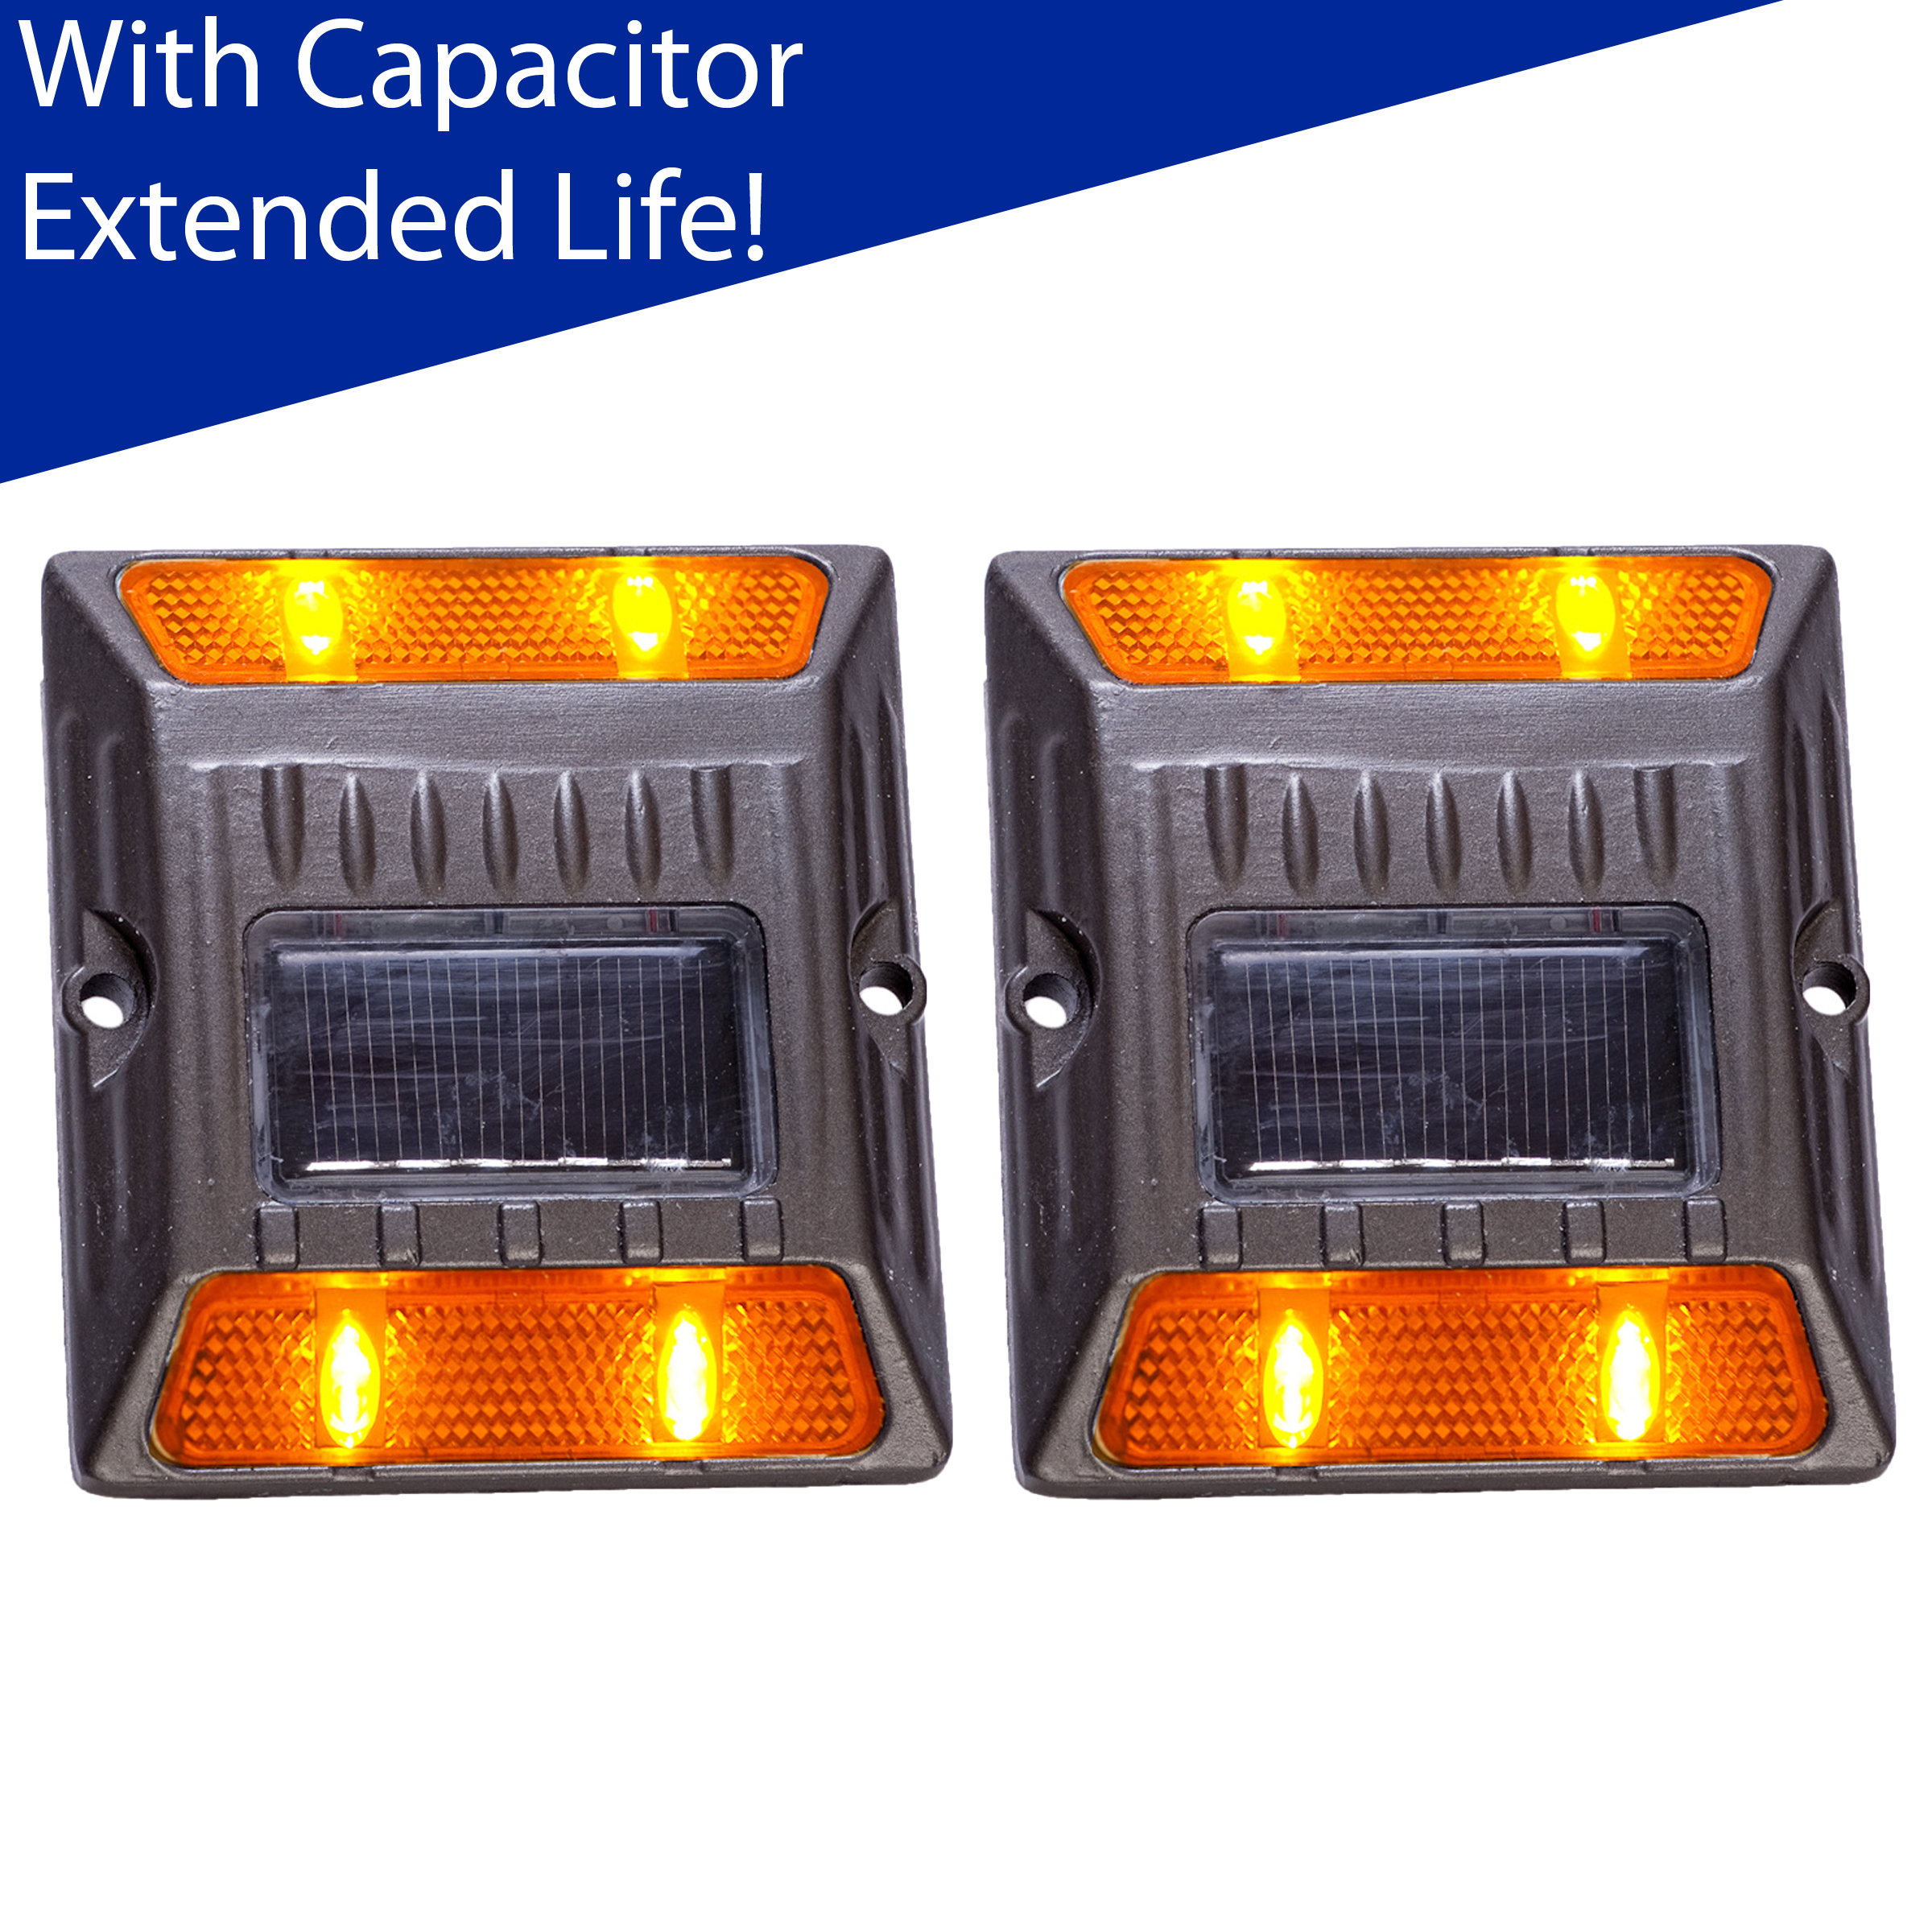 Reusable Revolution (2 Pack) Amber Alloy Solar Road Stud Path Deck Dock LED Light With Capacitor at Sears.com